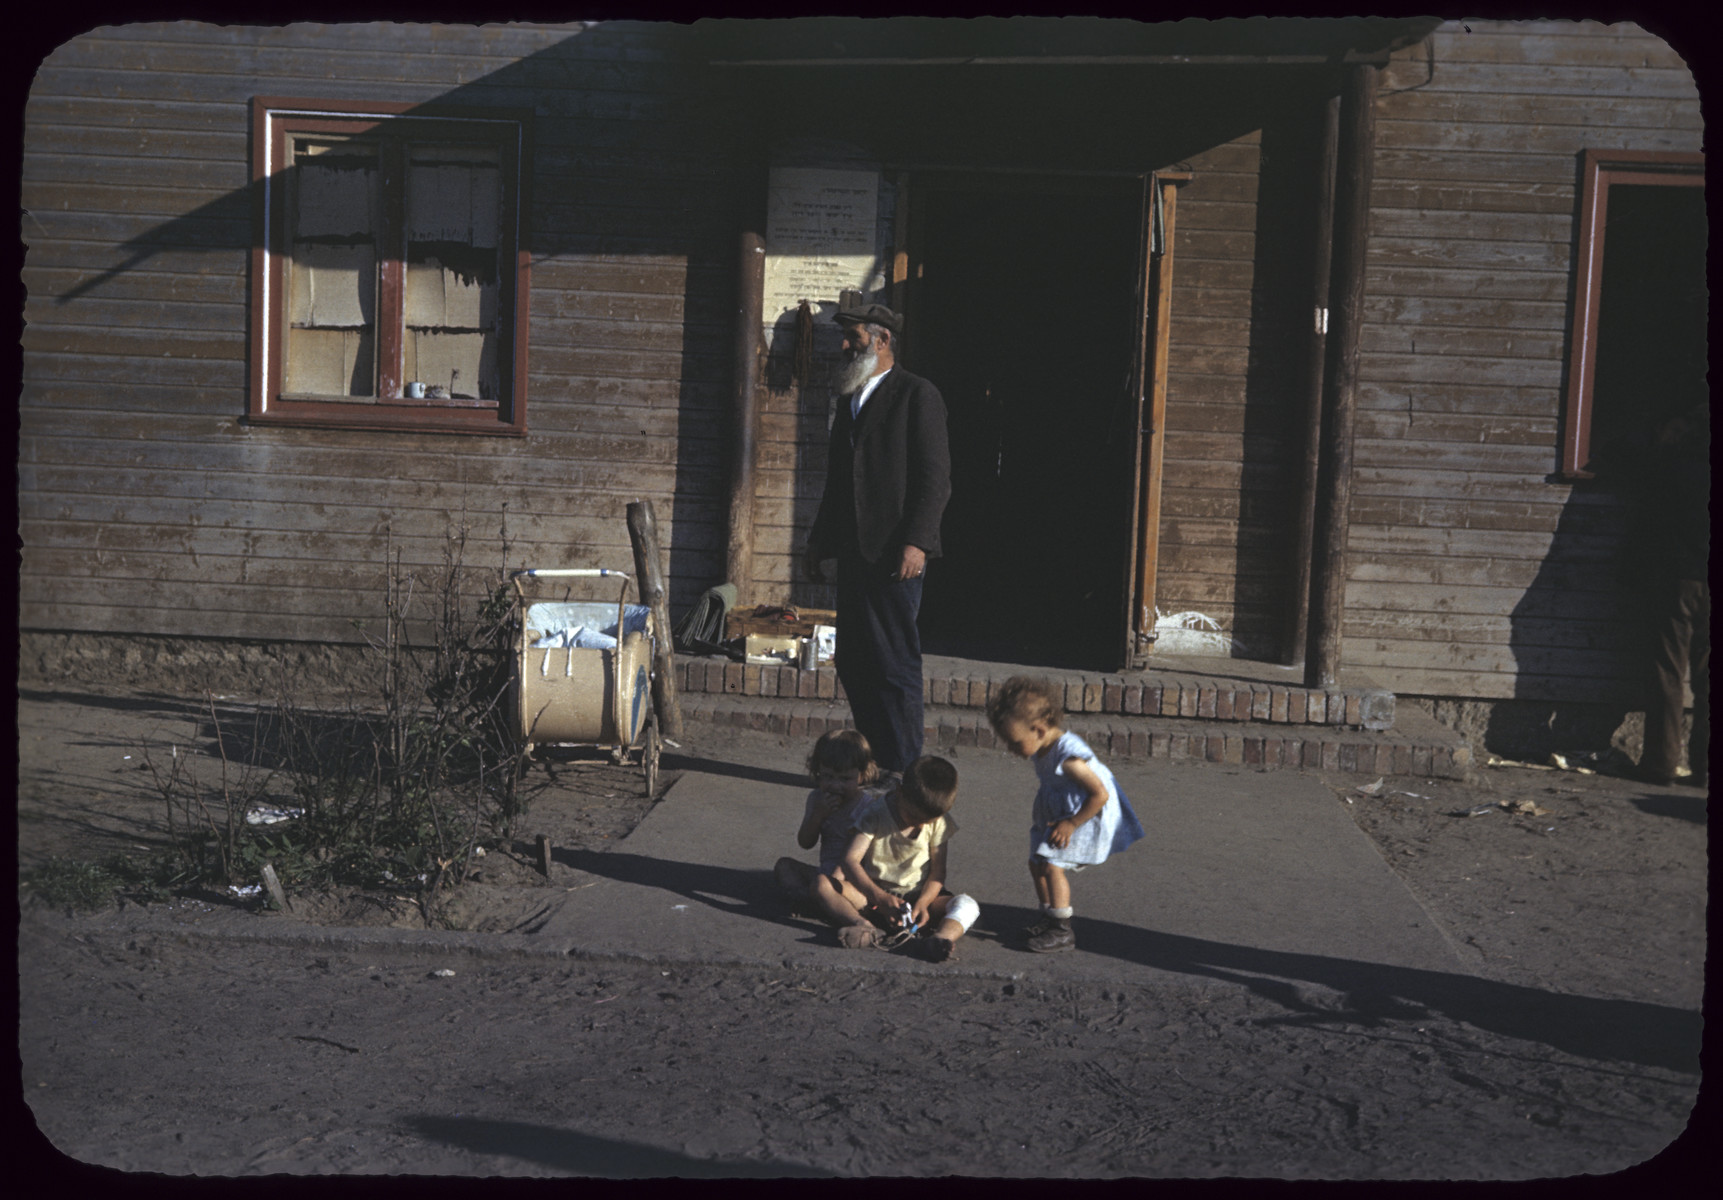 An older man stands in front of the entrance to a buliding in s displaced persons camp, while three young children play with a small toy in front of him.